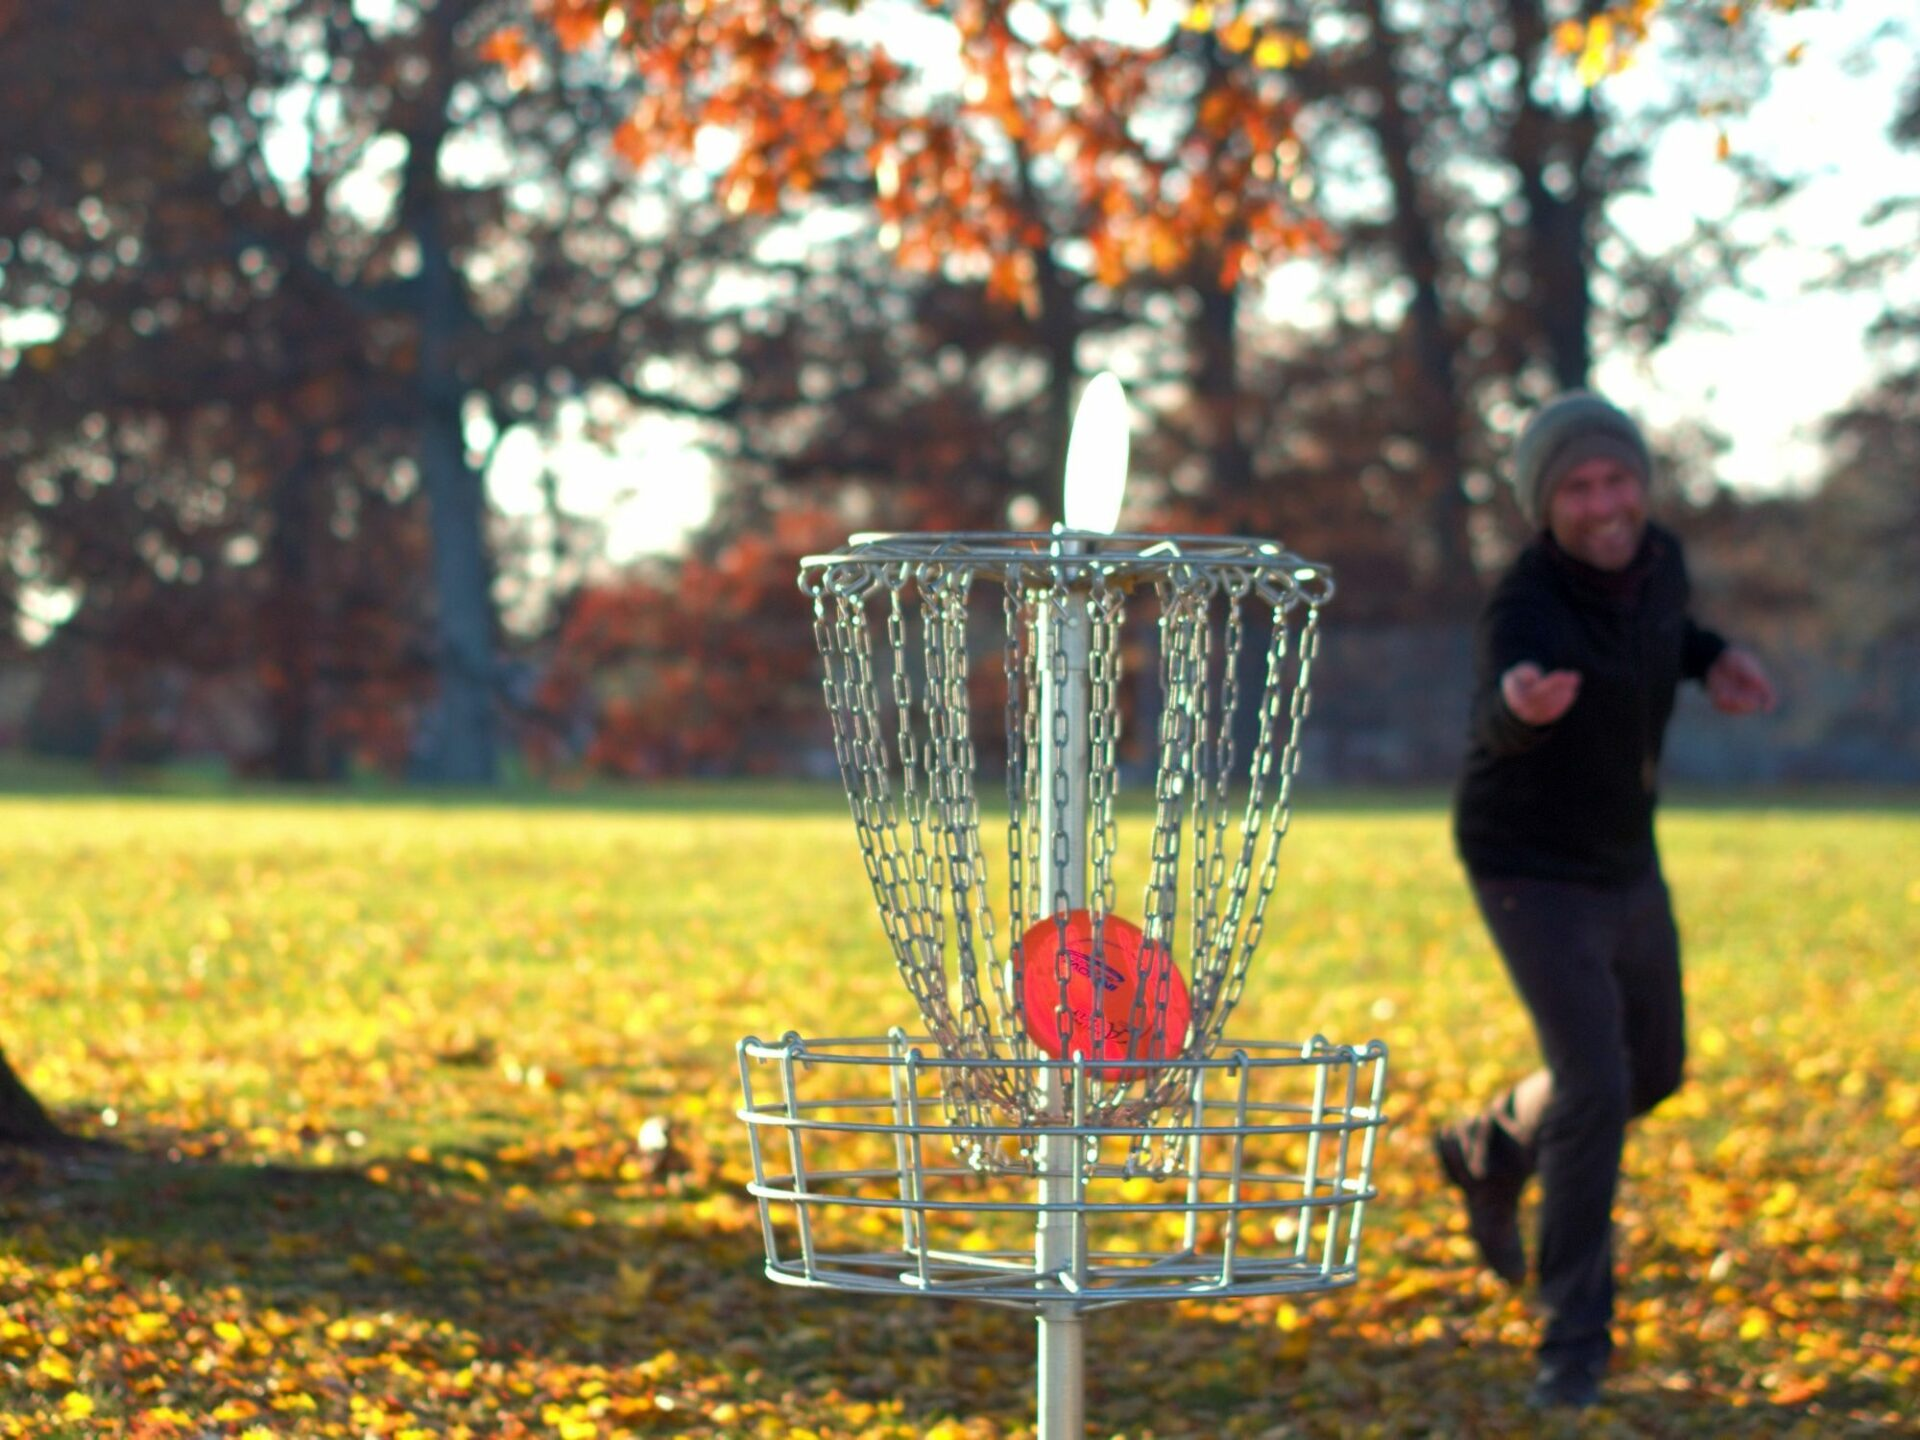 Young Man Playing Frisbee Golf in Fall